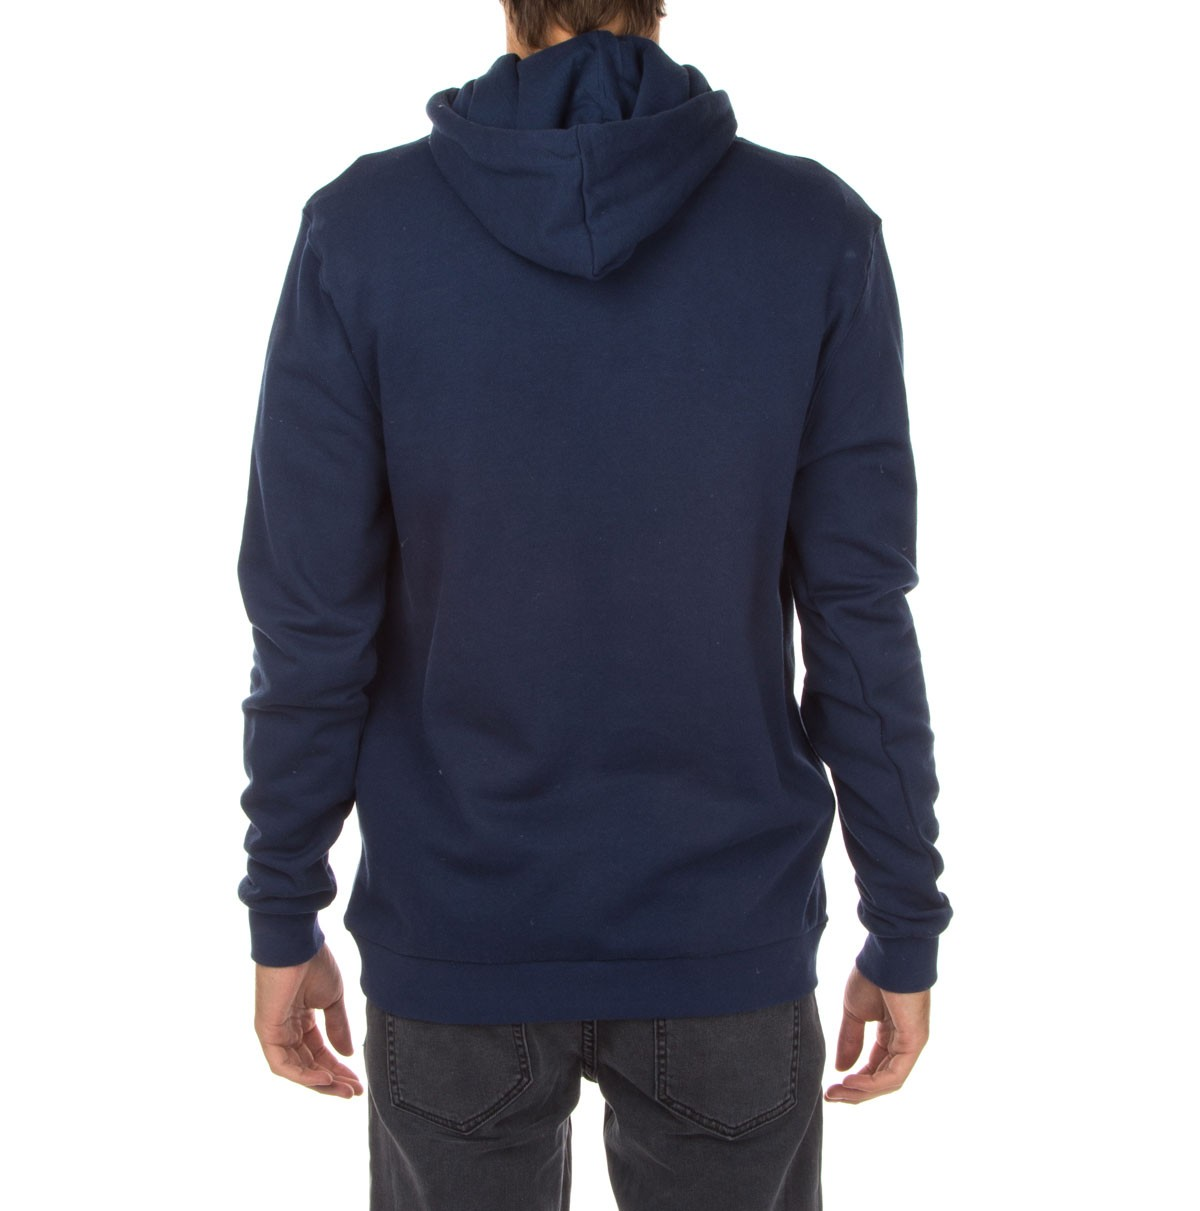 Supply Co. Un-Polo Pullover Hoodie - Navy